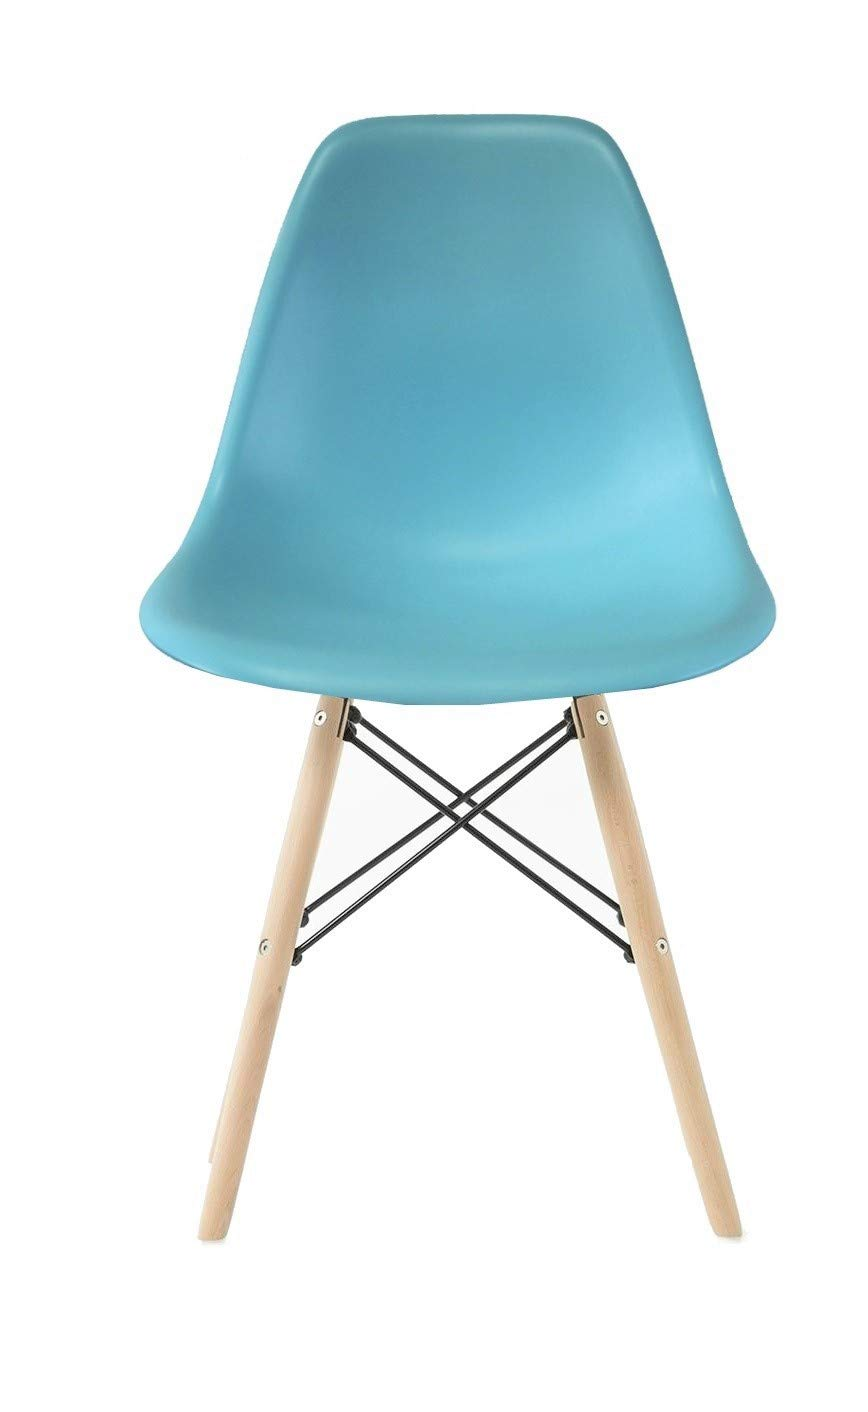 Plata Import PDI-PC-0116W Eames Style Side Chair with Natural Wood Legs Eiffel Dining Room Chair, Blue Plata Décor Import Inc